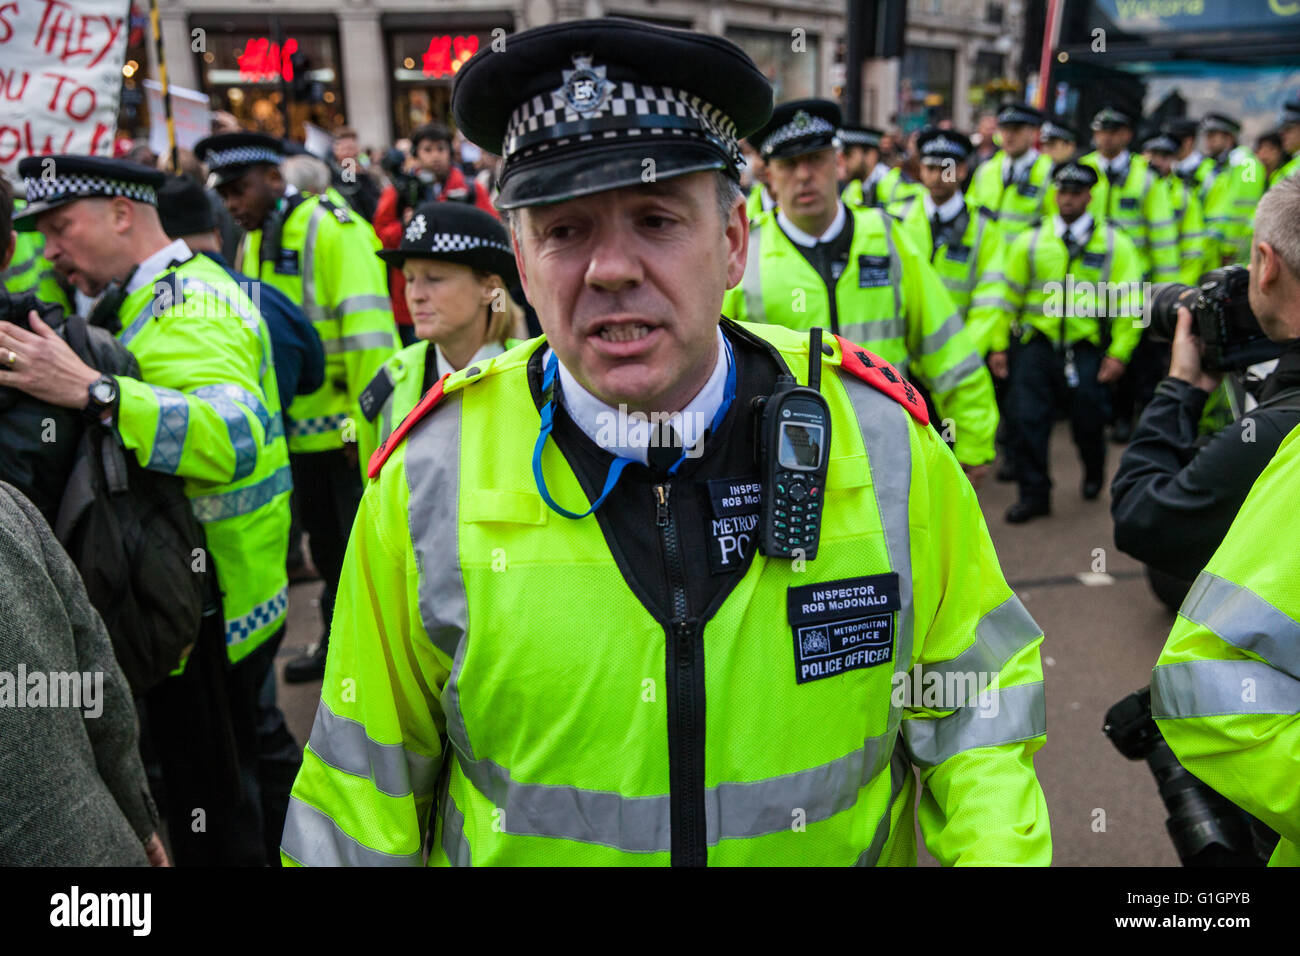 London, UK. 14th May, 2016. Police officers order protesters for a living wage and trade union rights to vacate - Stock Image